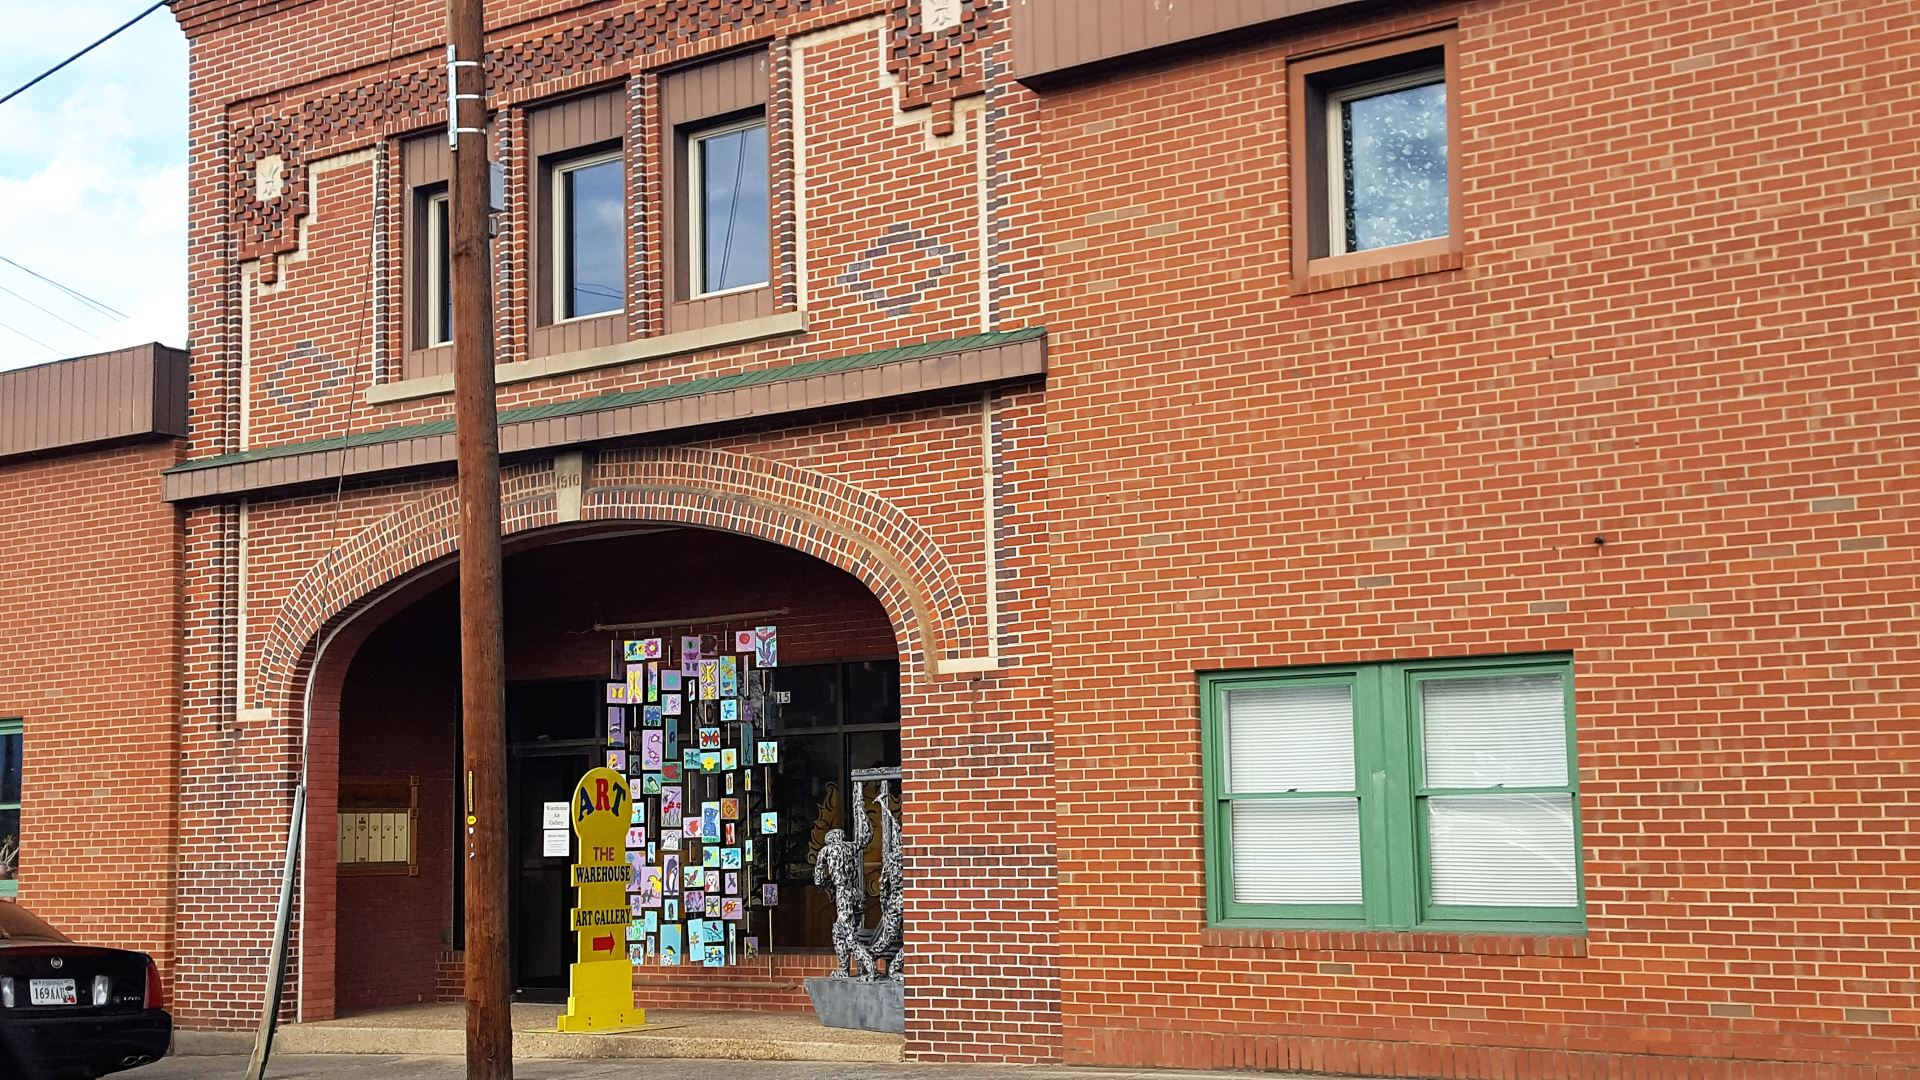 The Warehouse Art Gallery